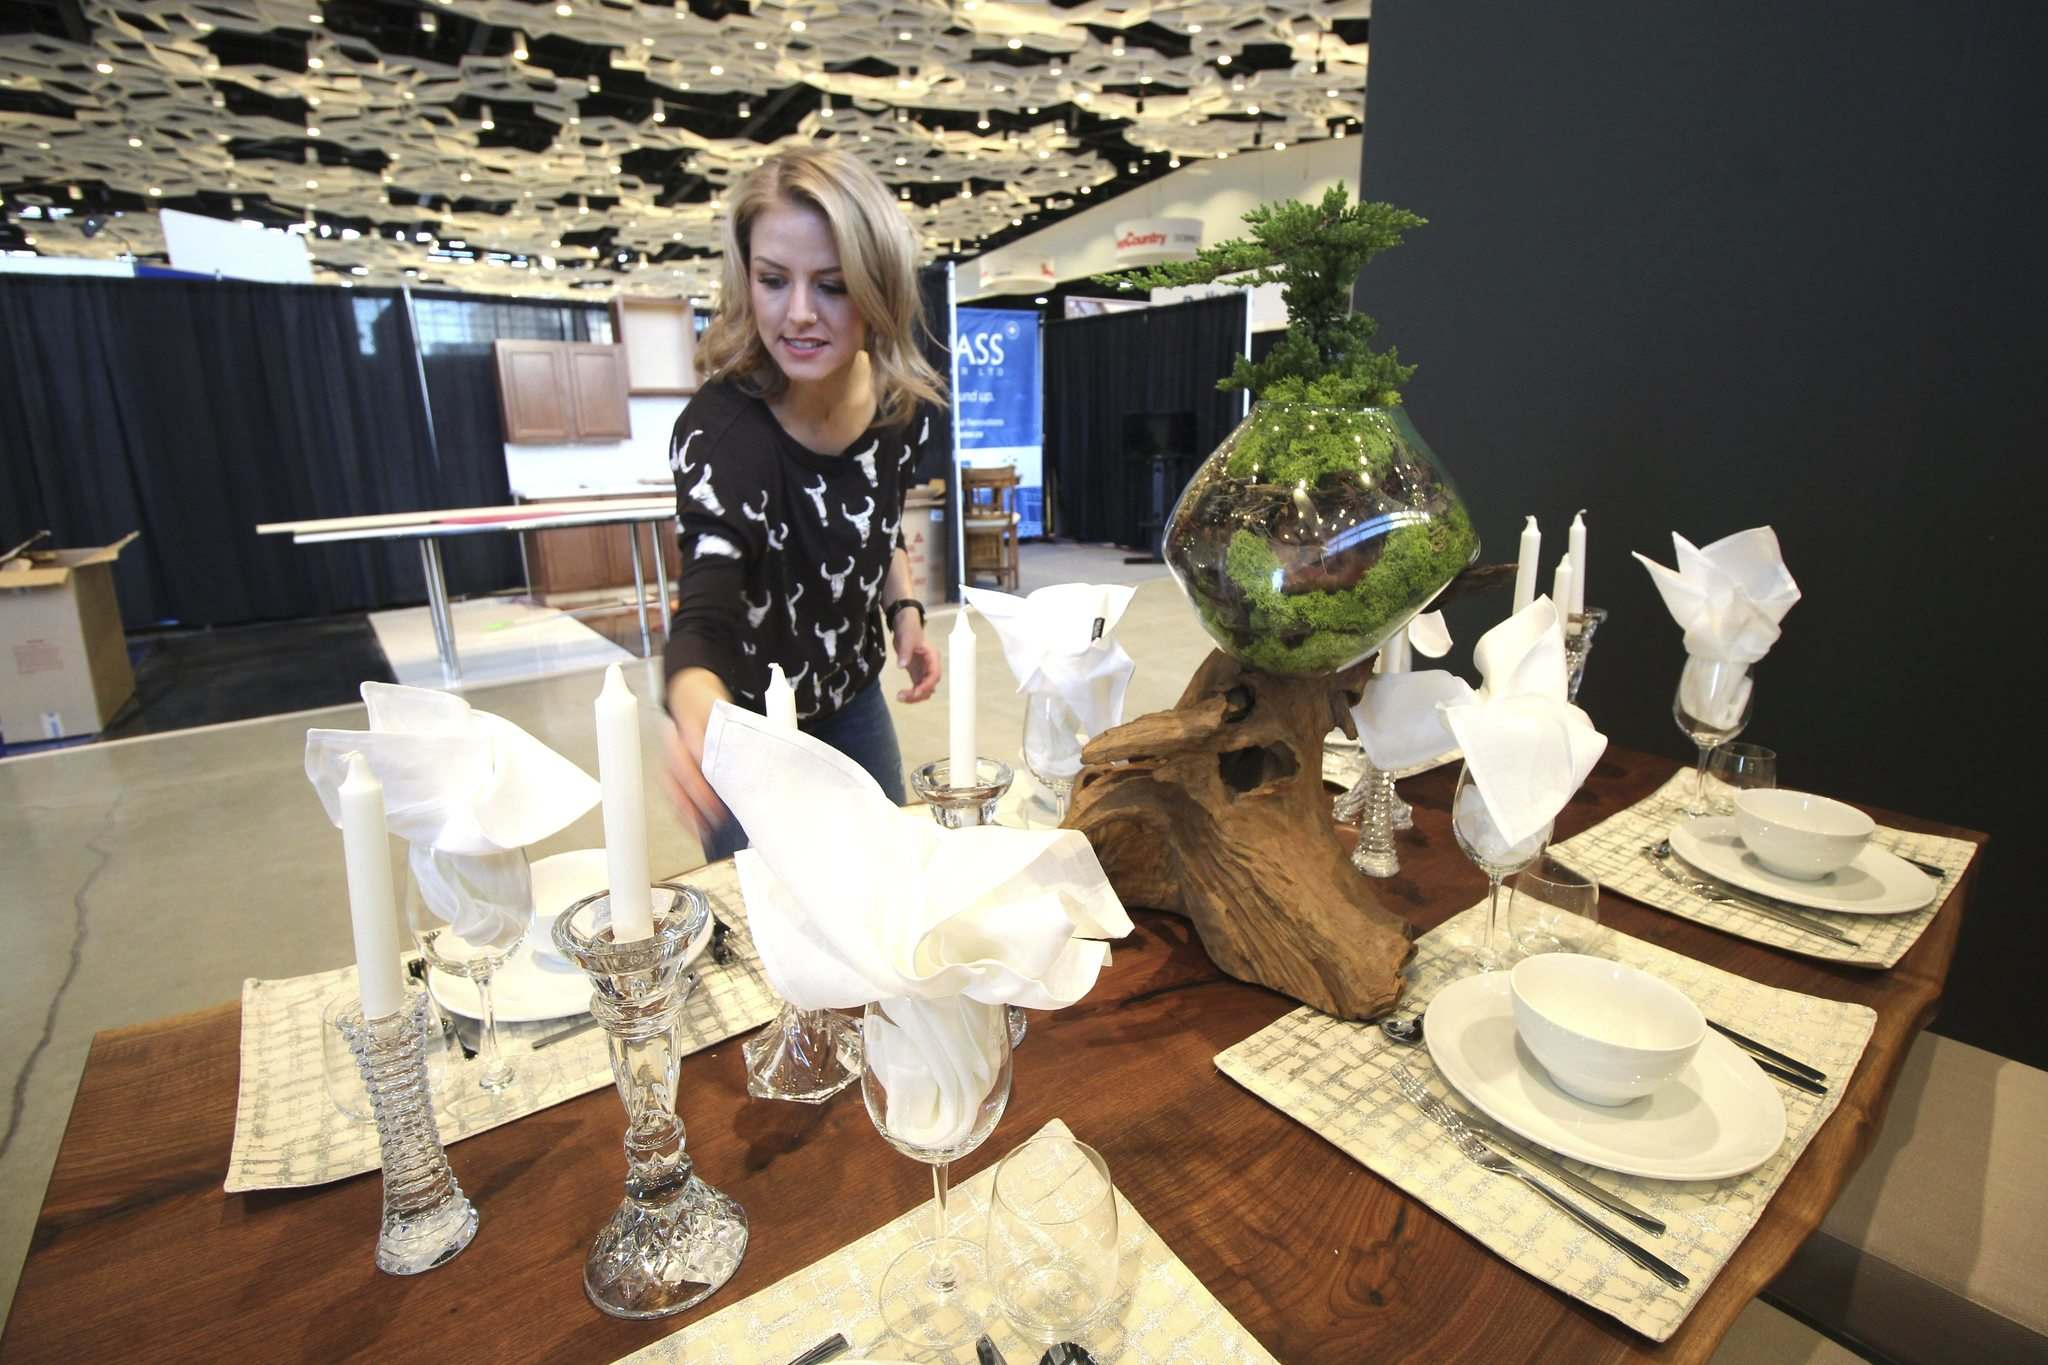 Jessica Botelho-Urbanski / Winnipeg Free Press</p><p>Kelsey Kosman of Dollhouse Design sets up her booth at the Winnipeg Renovation Show at the RBC Convention Centre Thursday. The show opens Friday and runs through Sunday.</p></p>